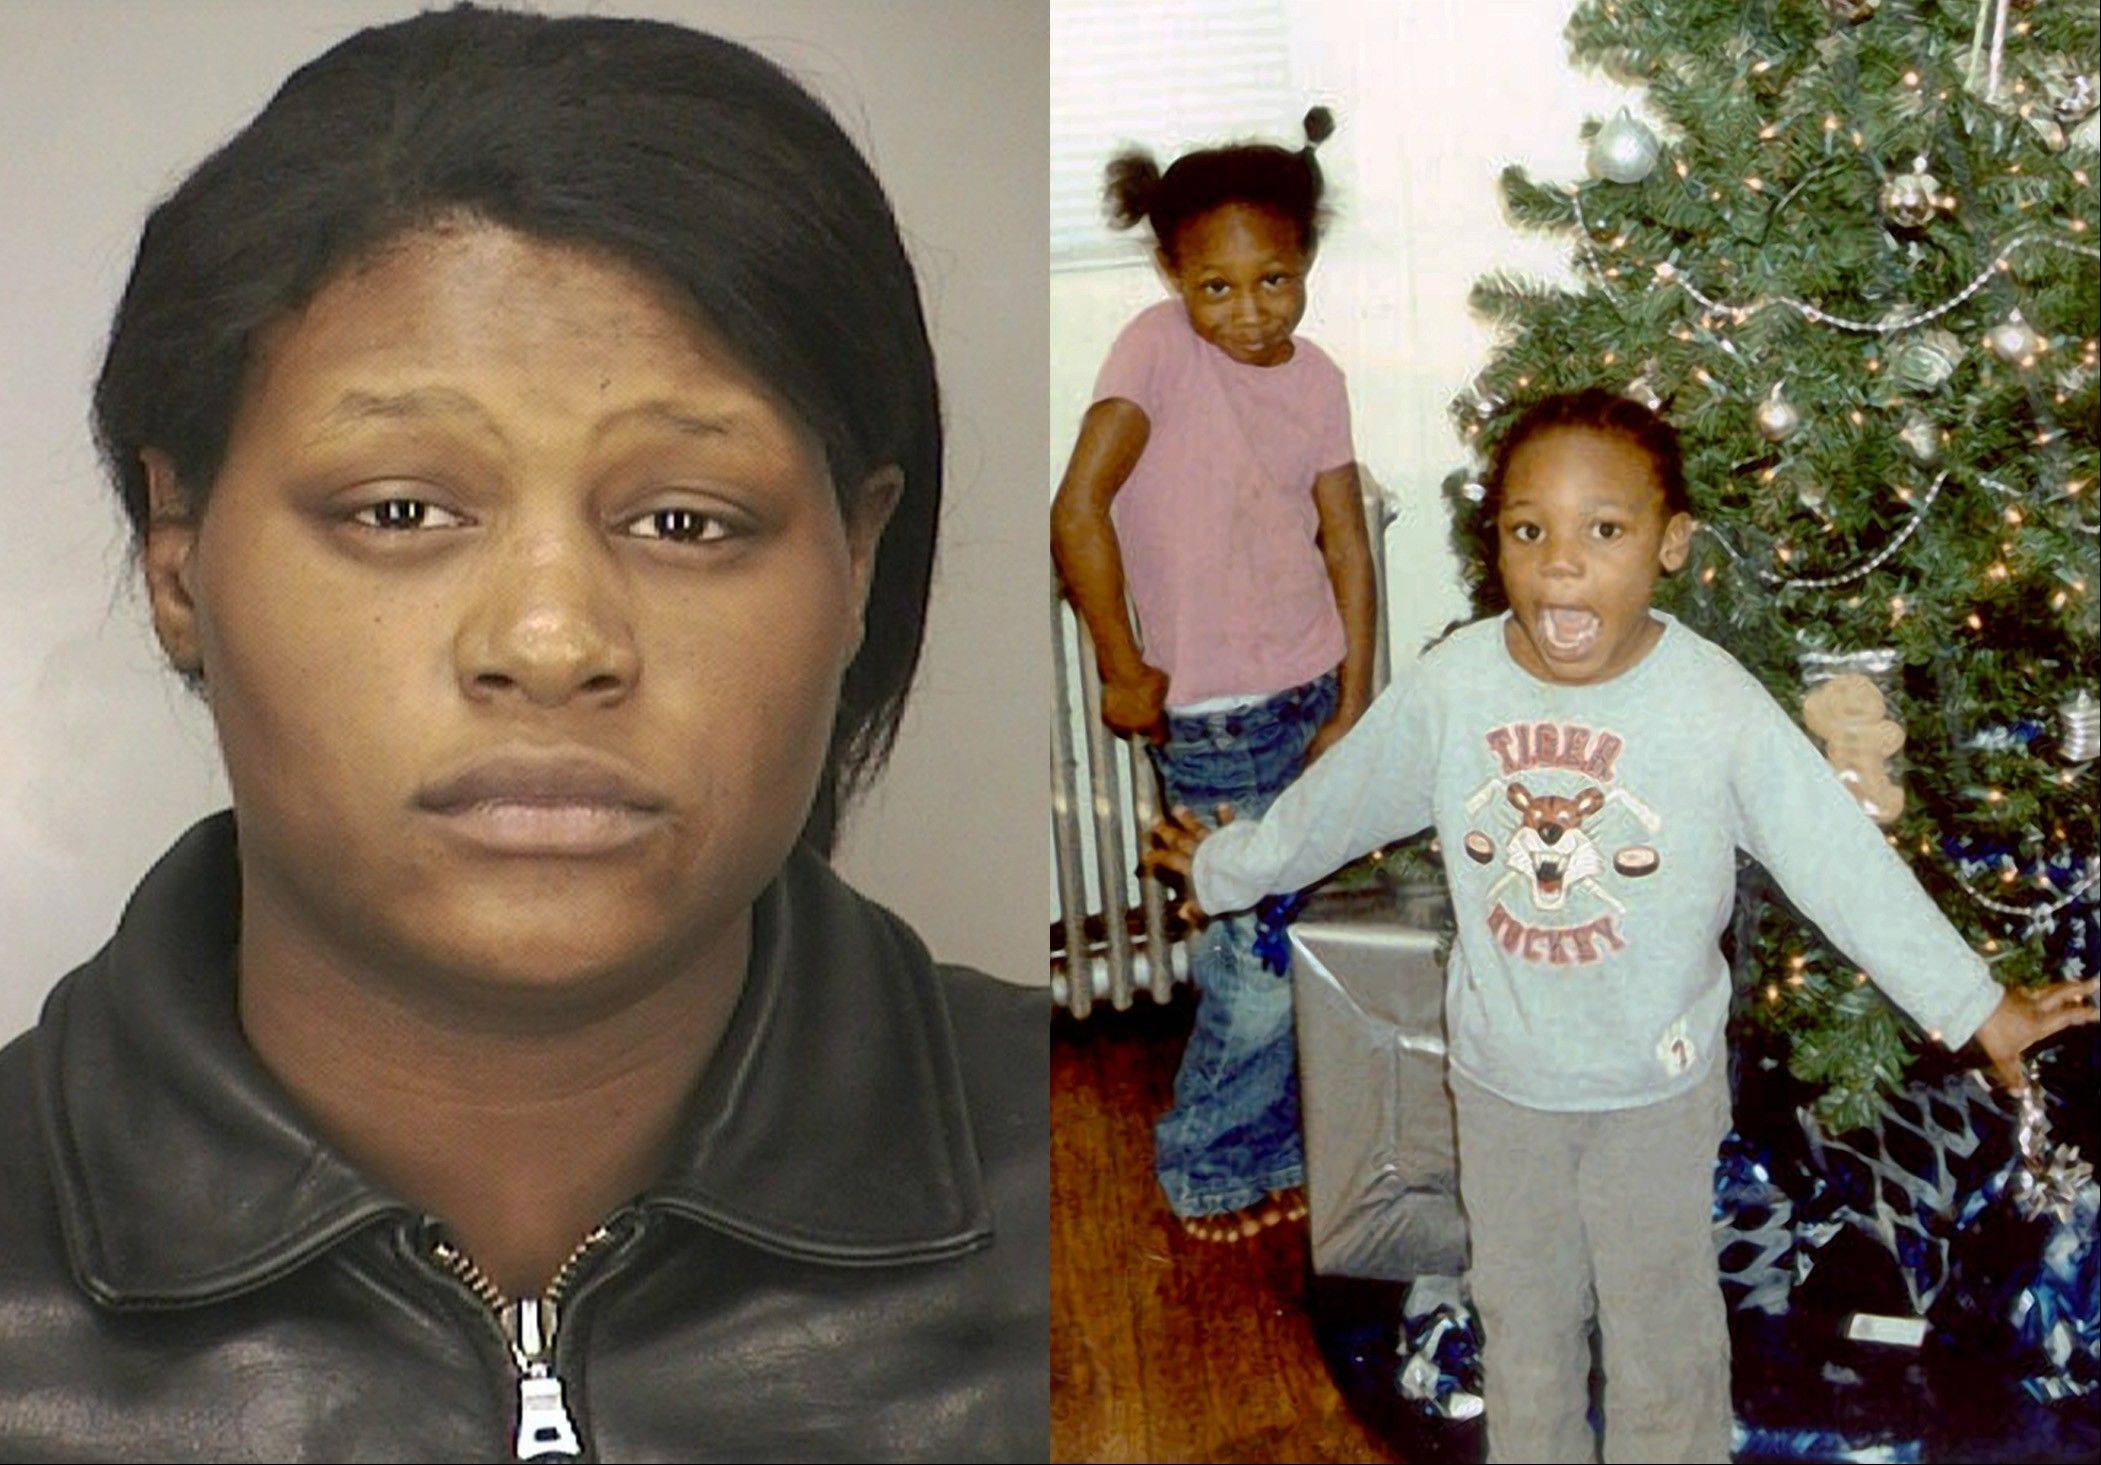 This combination of file photos provided by the Nassau County Police Department shows Leatrice Brewer in 2003, and two of her children, Jewell Ward, and Michael Demesyeux, right. Legal experts say the case of Brewer, who drowned her three children in a bathtub and is now seeking to cash in, could succeed because of a loophole. Since Leatrice Brewer was never convicted � instead found not guilty by reason of mental disease � legal experts say she could make a plausible case to receive some of her children�s $350,000 estate.